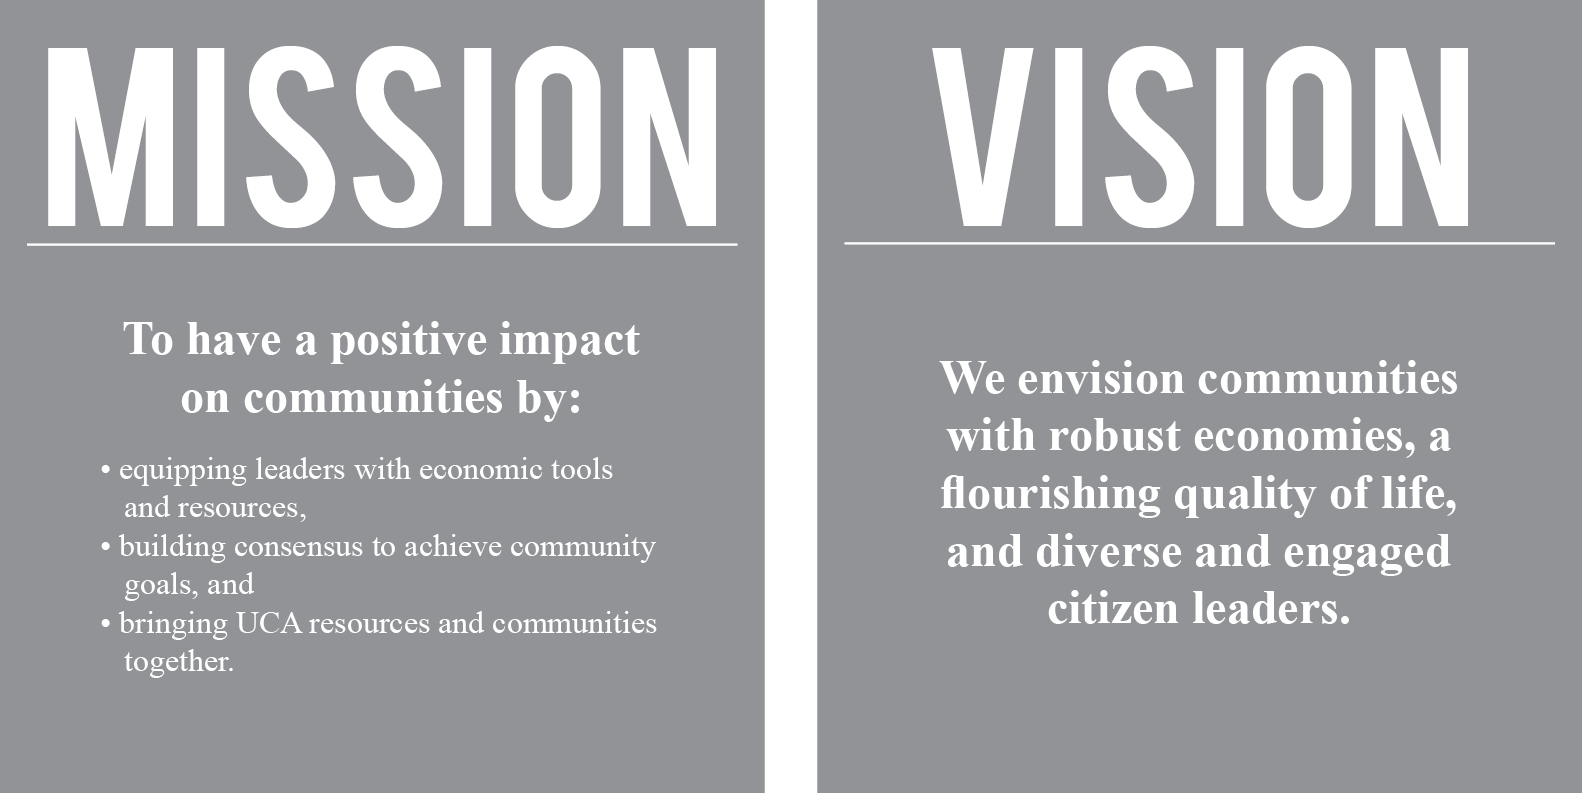 CCED Mission and Vision statements.